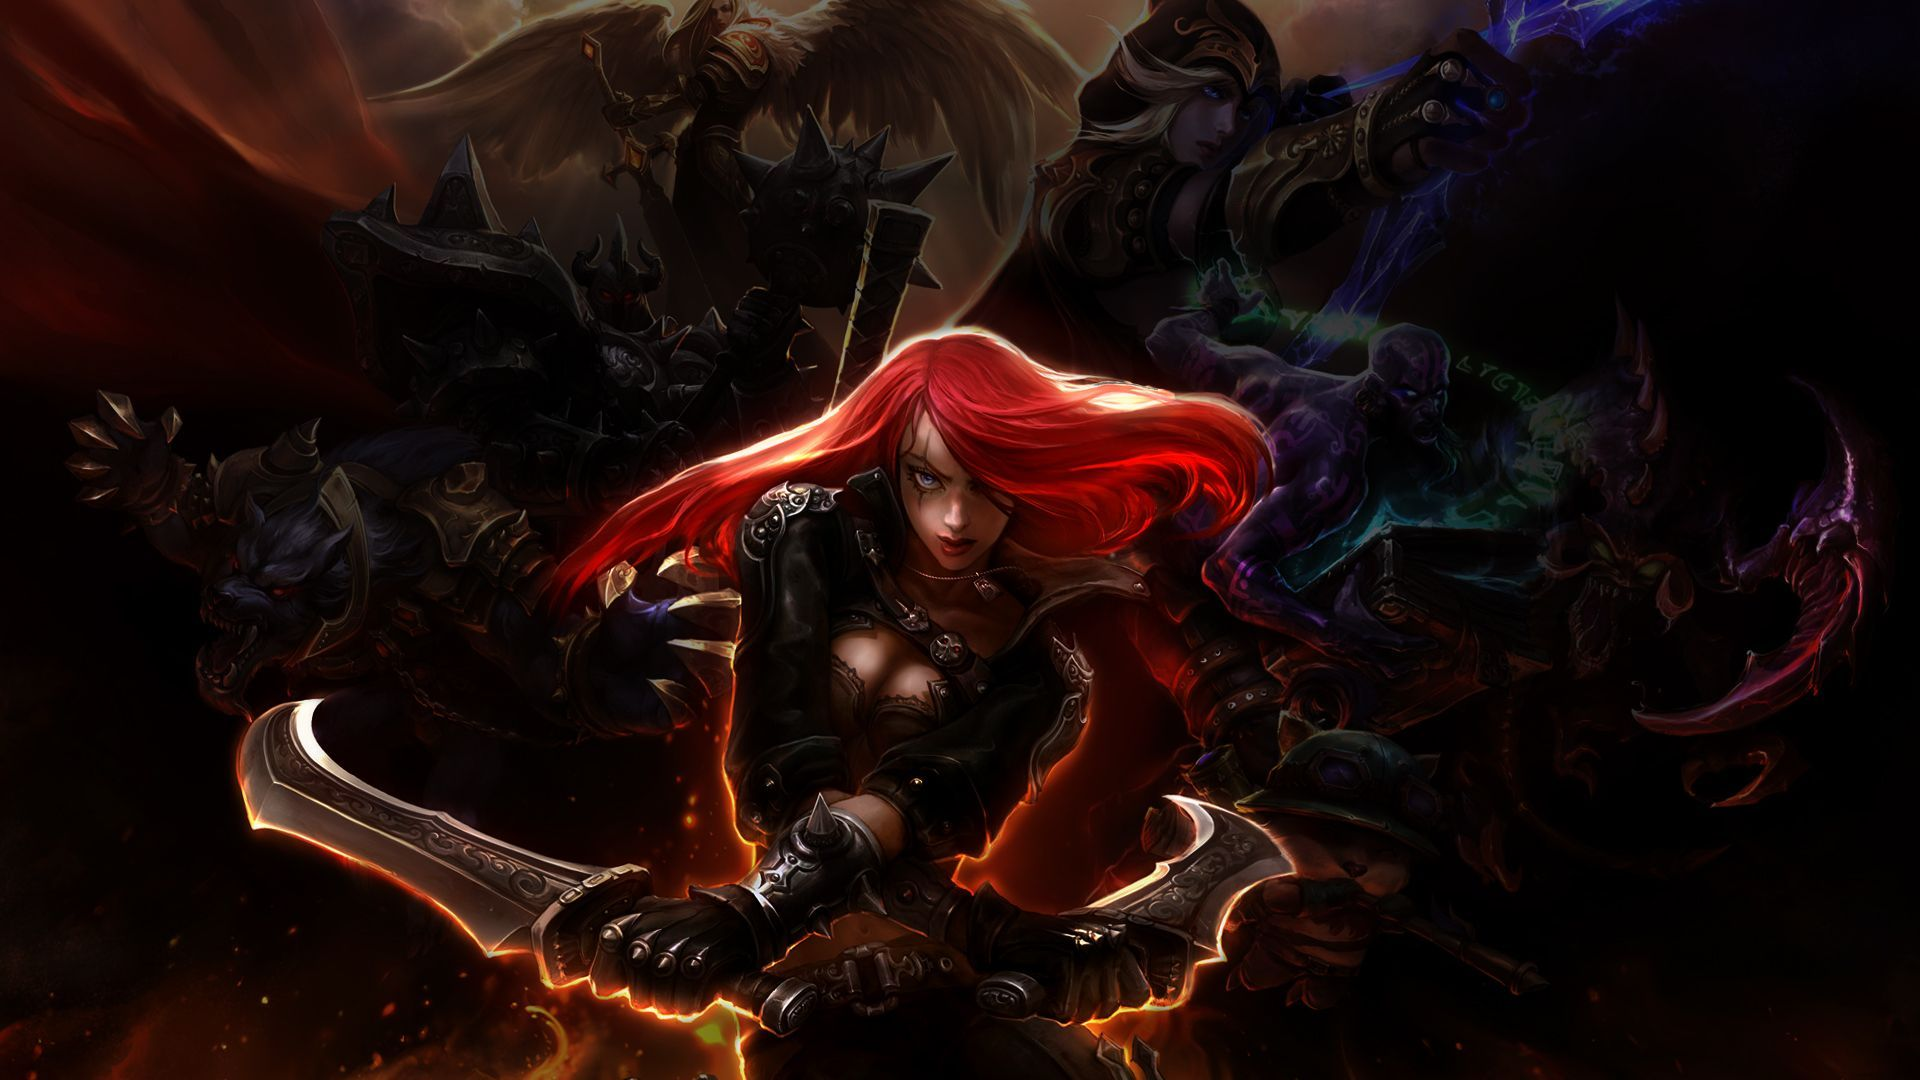 LOL Katarina Wallpaper HD  WallpaperSafari